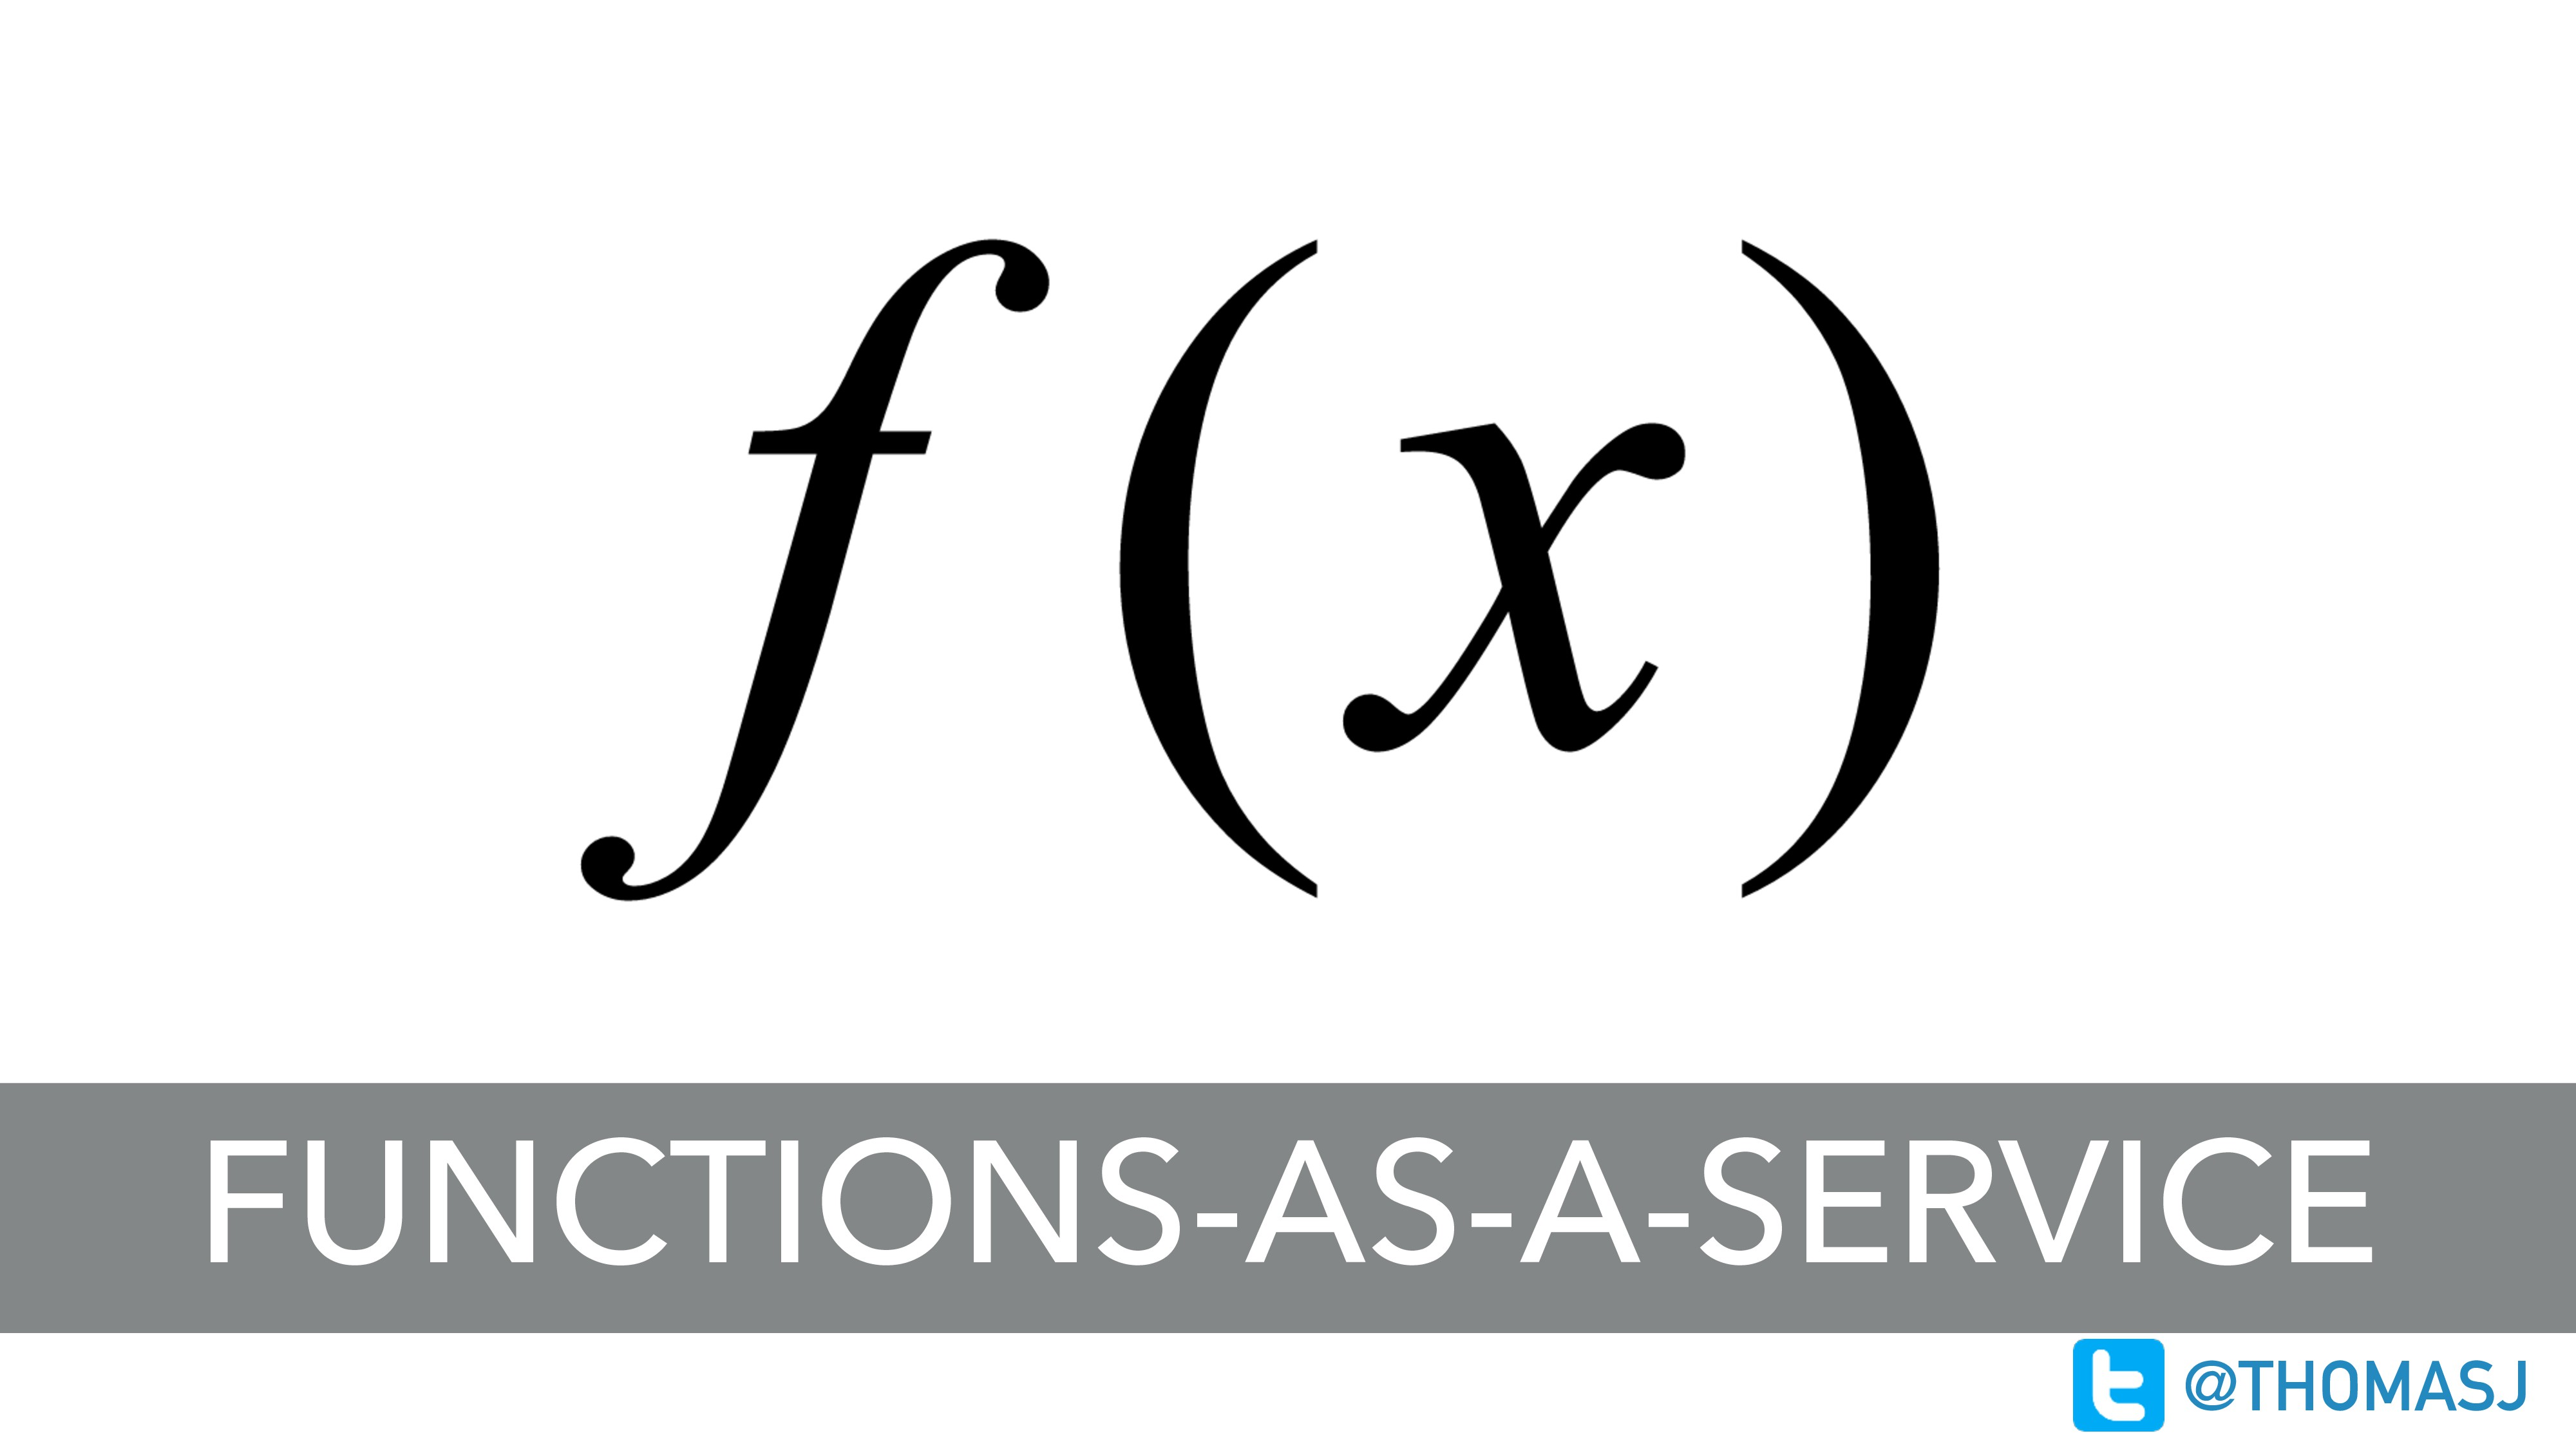 FUNCTIONS-AS-A-SERVICE @THOMASJ